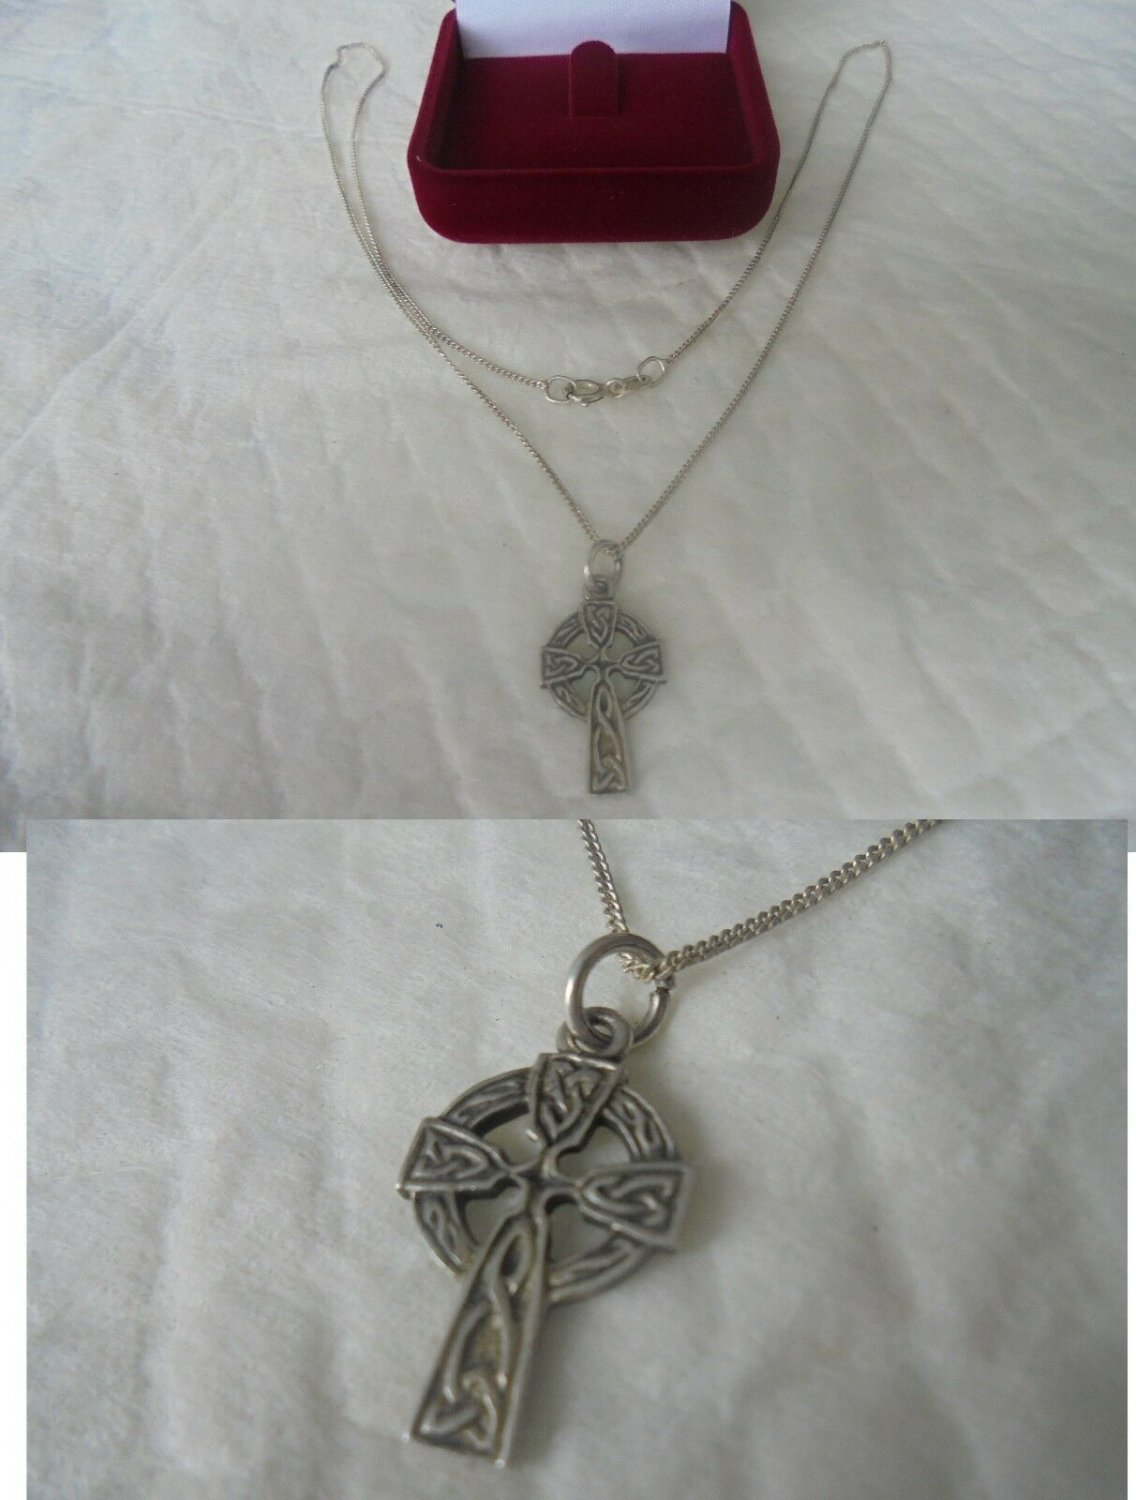 NECKLACE and  Celtic CROSS pendent in sterling SILVER 925 in gift box Original